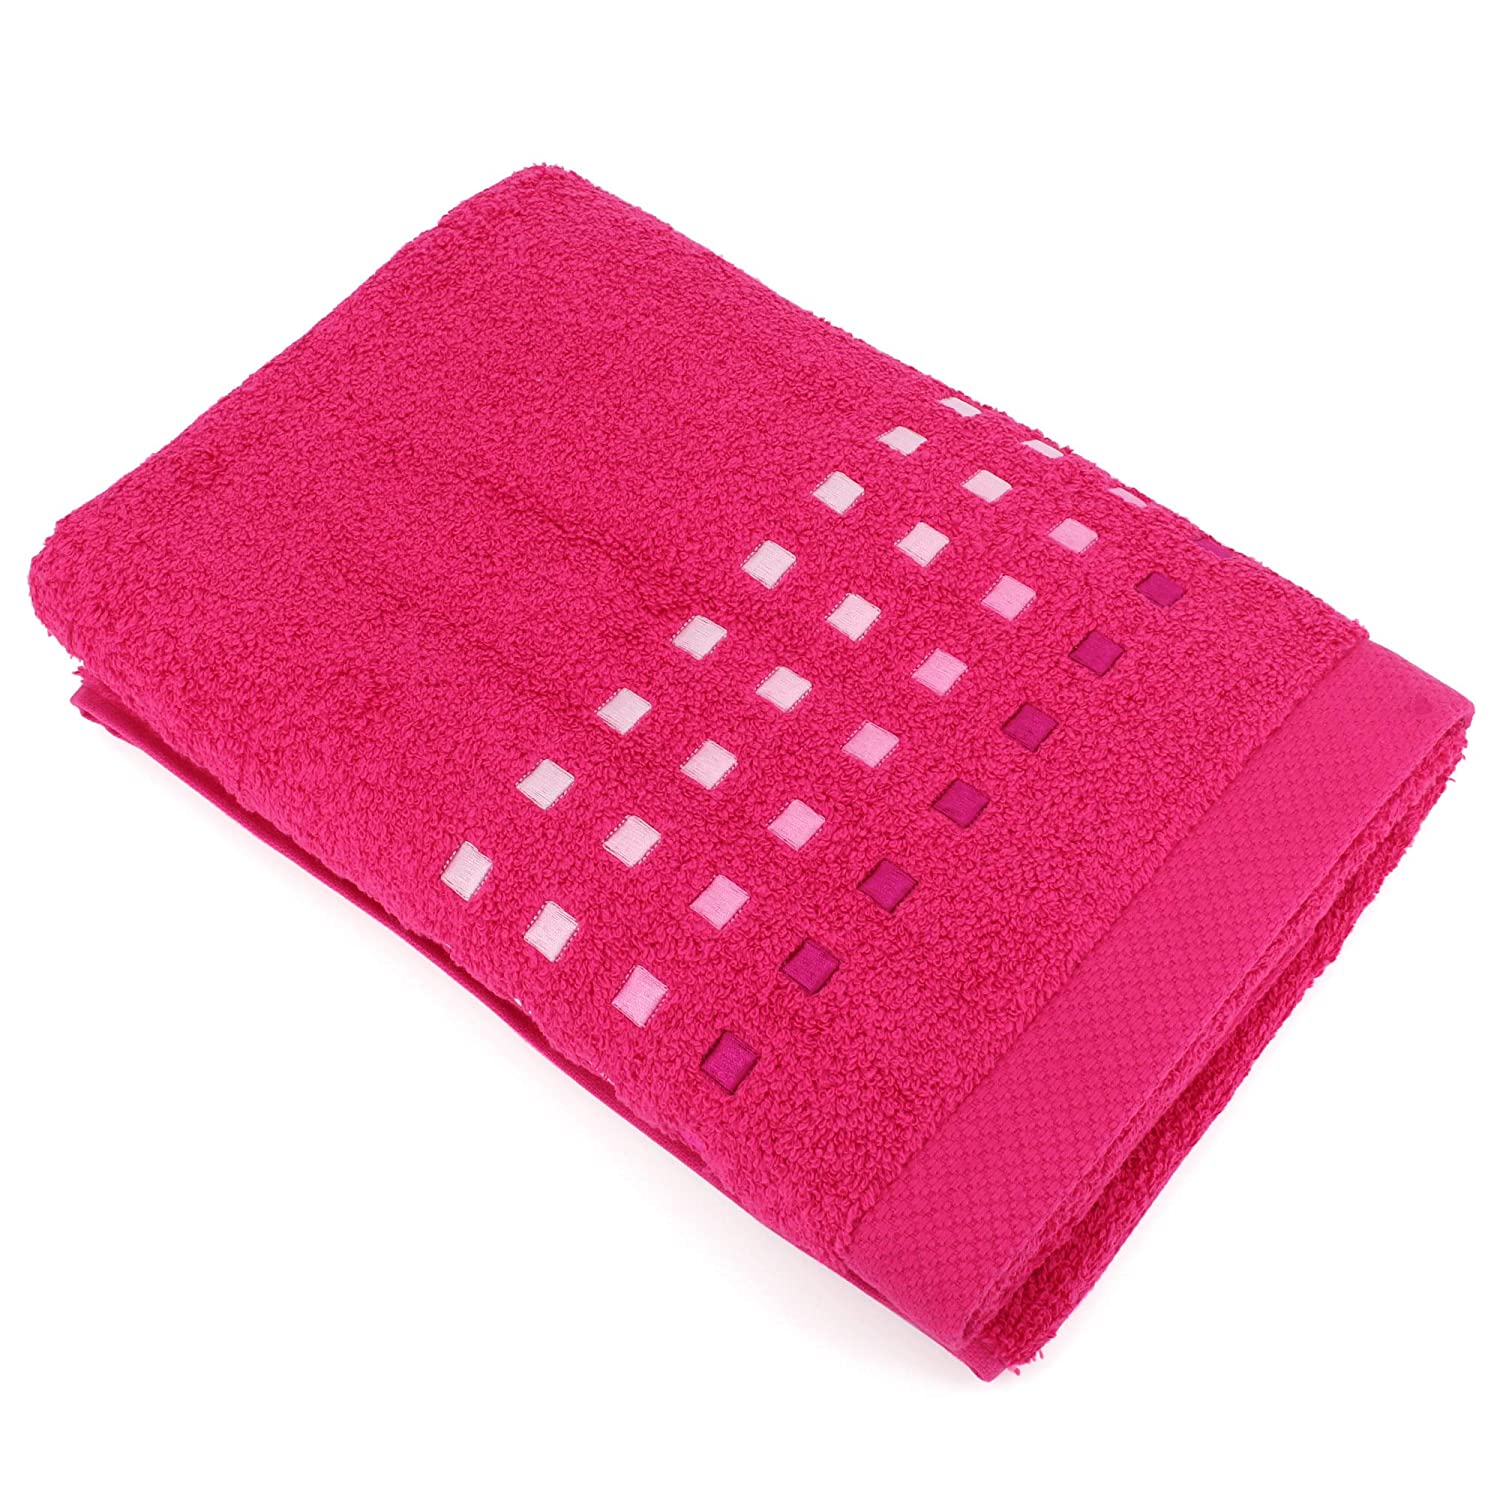 Shower And Bath By Flying Fresh Lightweight and Absorbent Camping Great For Sport Purple Yoga YONGPIN 1PC Microfibre Towel Extra Large Quick Dry Compact Travel Towel For The Beach swimming Gym